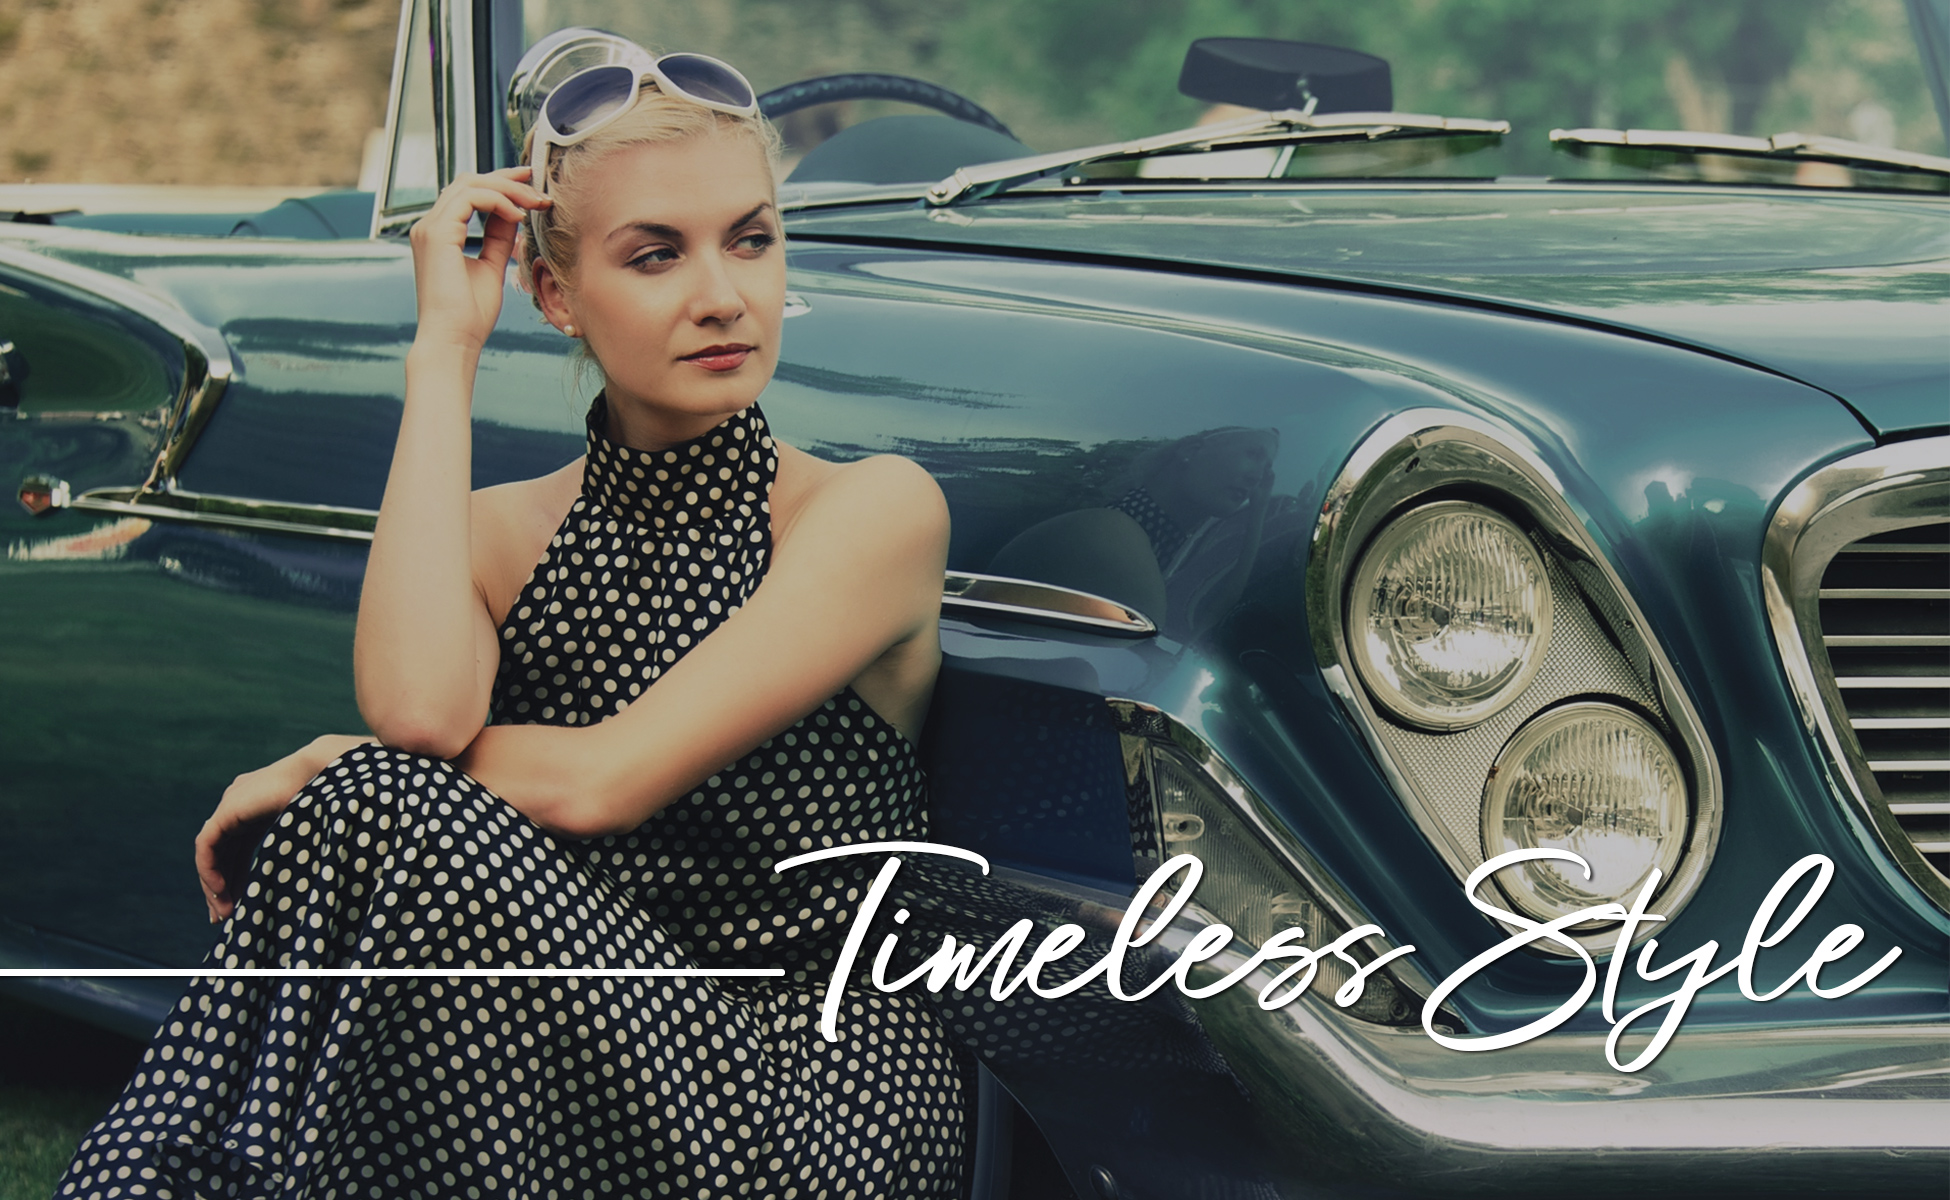 Blue tinted 1950's car with blonde woman wearing sunglasses and polkadot dress leaning against it. Type: Timeless Style